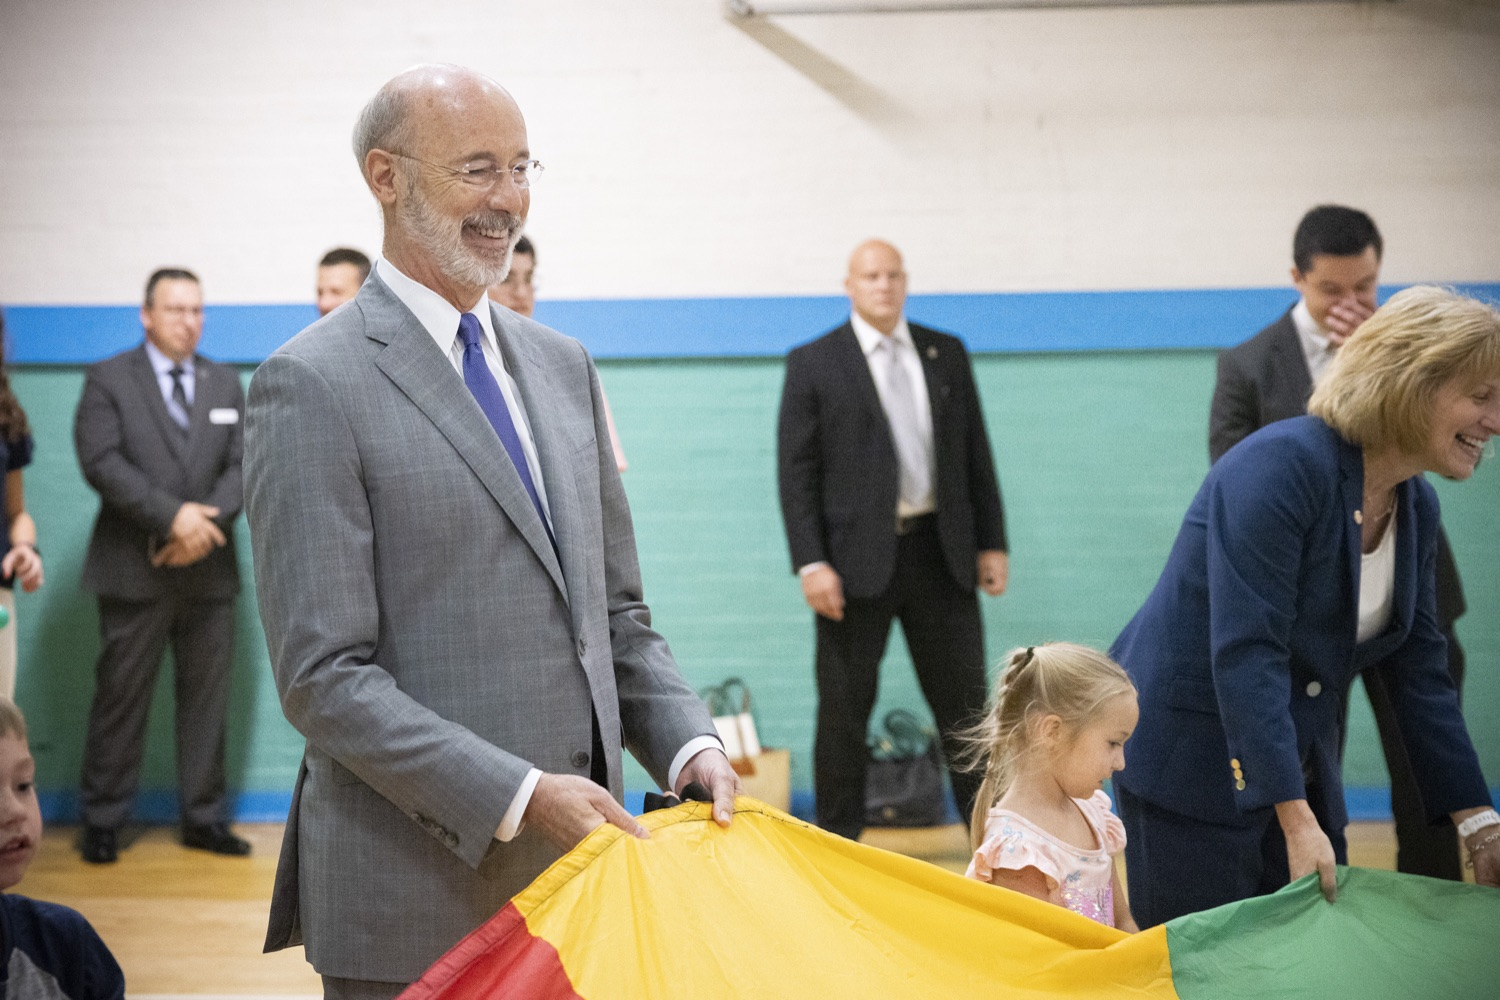 """<a href=""""https://filesource.wostreaming.net/commonwealthofpa/photo/18940_gov_childhooded_dz_020.jpg"""" target=""""_blank"""">⇣Download Photo<br></a>Governor Tom Wolf today was joined by advocates and legislative members to celebrate the $30 million increase in early childhood education funding in the state budget at the YMCA in Reading. This new funding will allow an additional 3,270 children to enroll in the states high-quality early learning programs.  Reading, PA - July 19, 2021"""